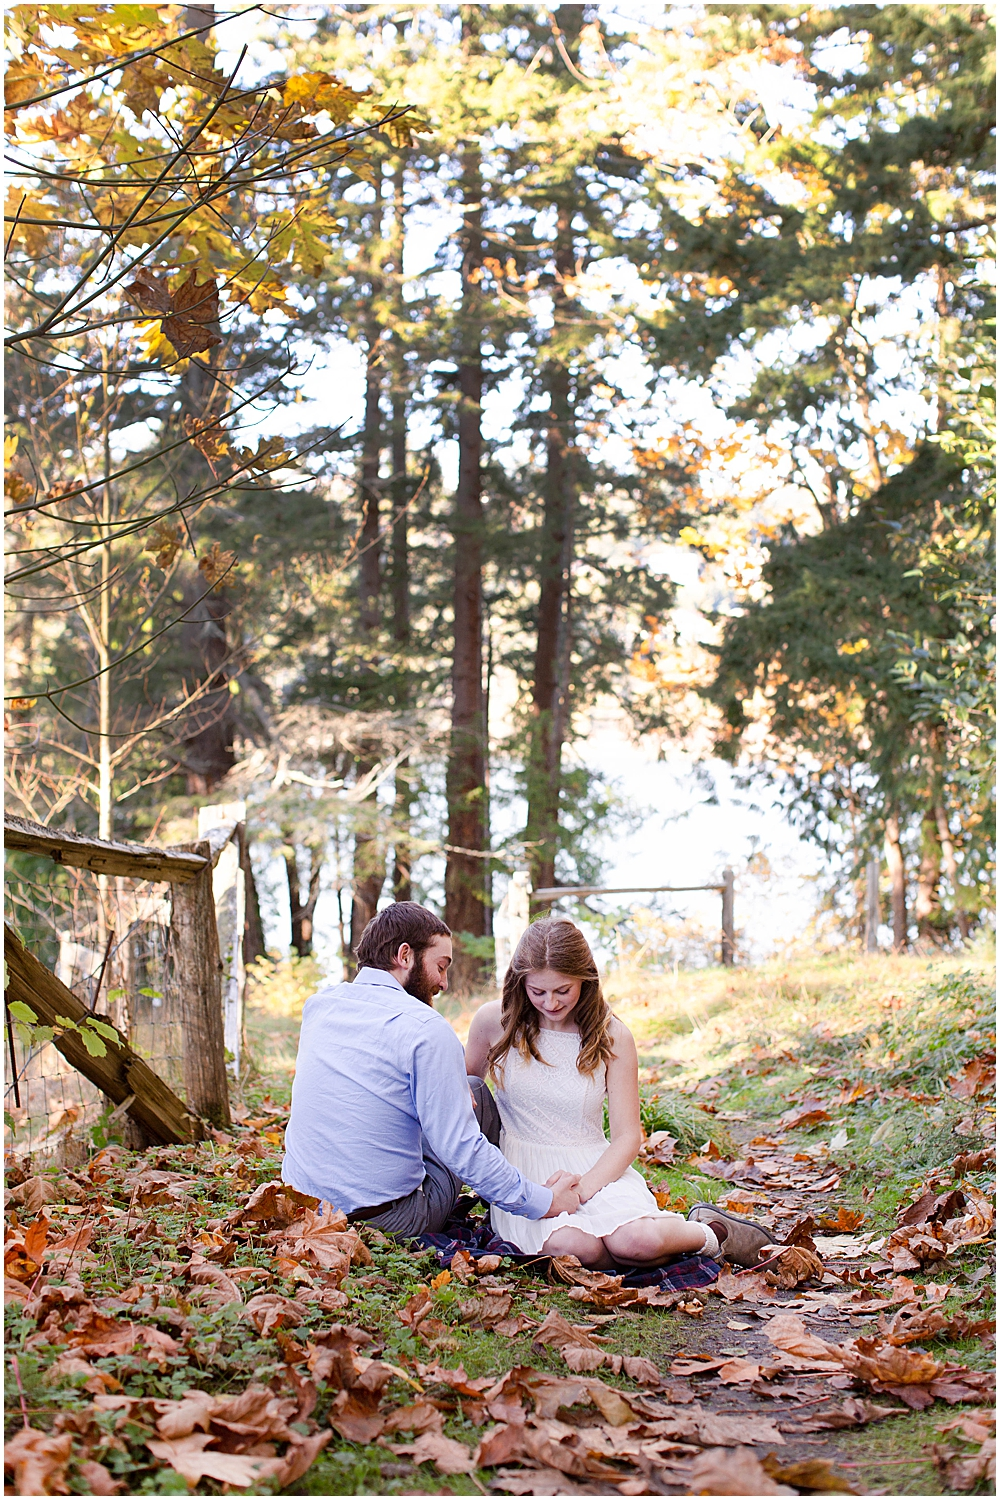 Engagement photos at Woodstock Farm taken by Little Earthling Photography